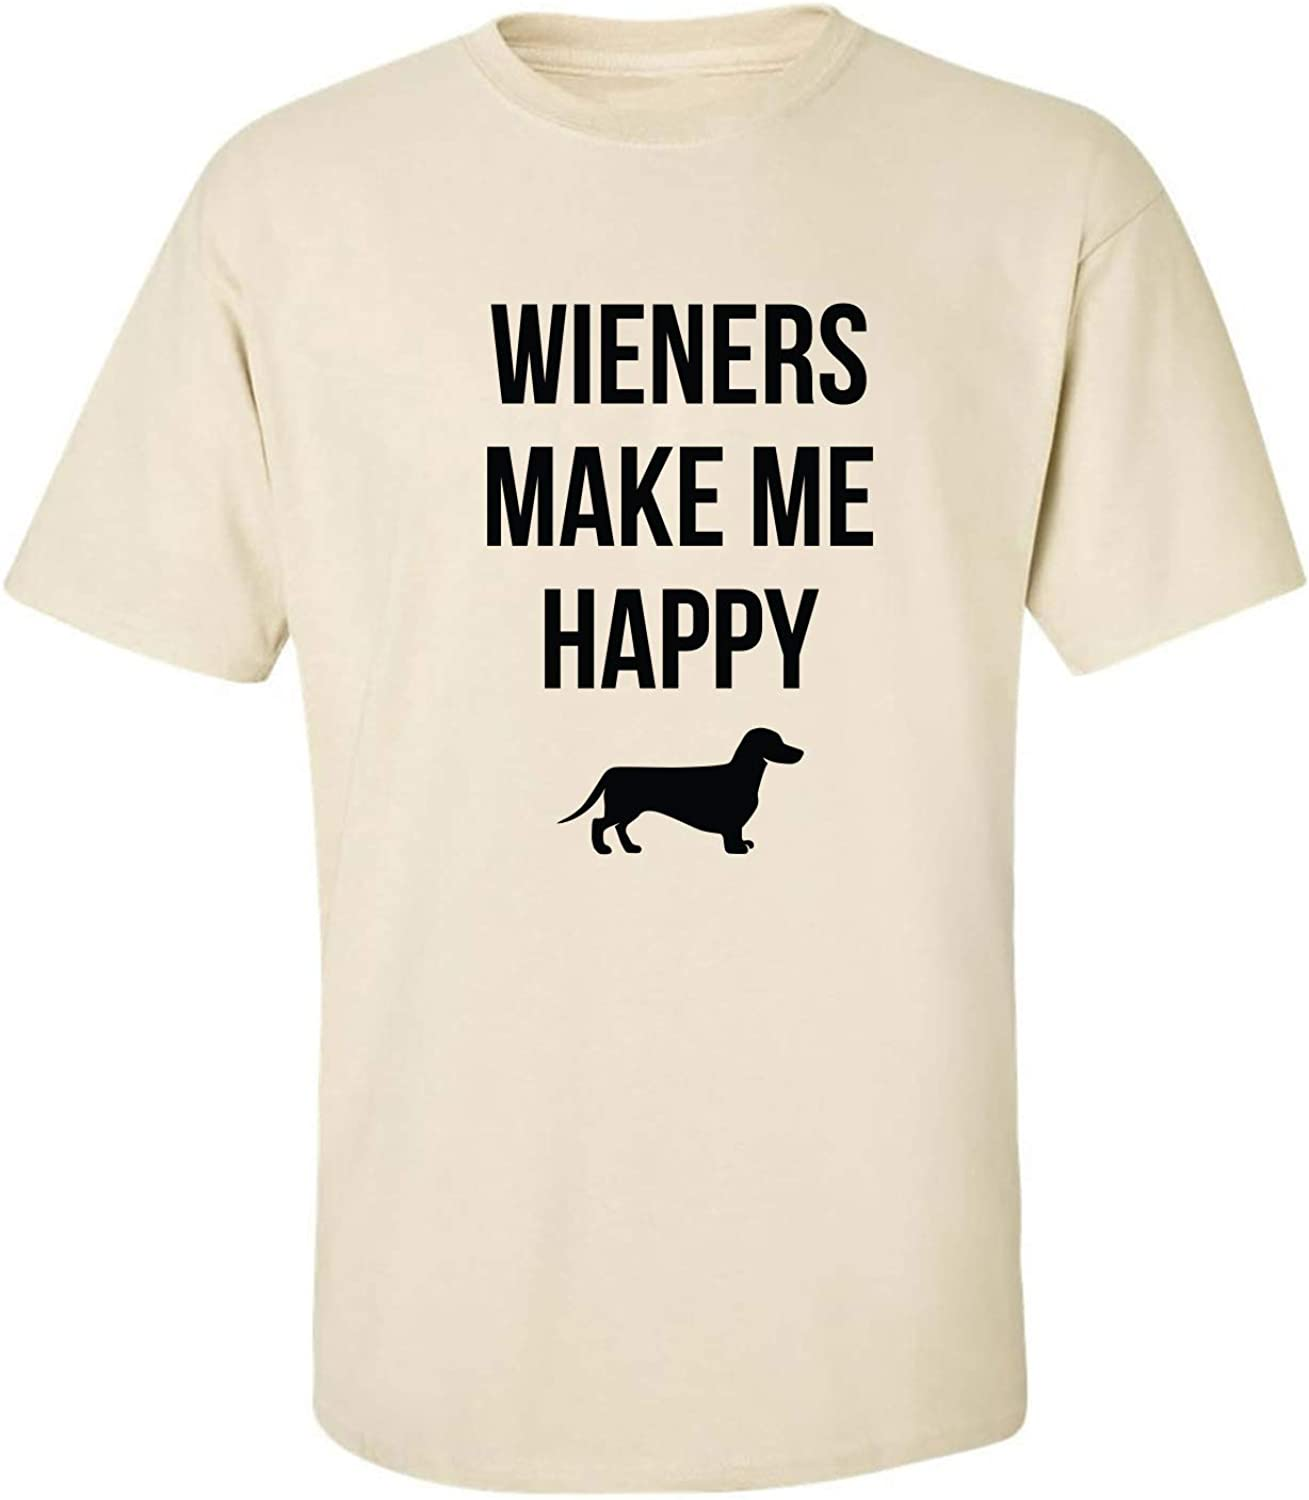 Wieners Make Me Happy Adult T-Shirt in Sand - XXX-Large